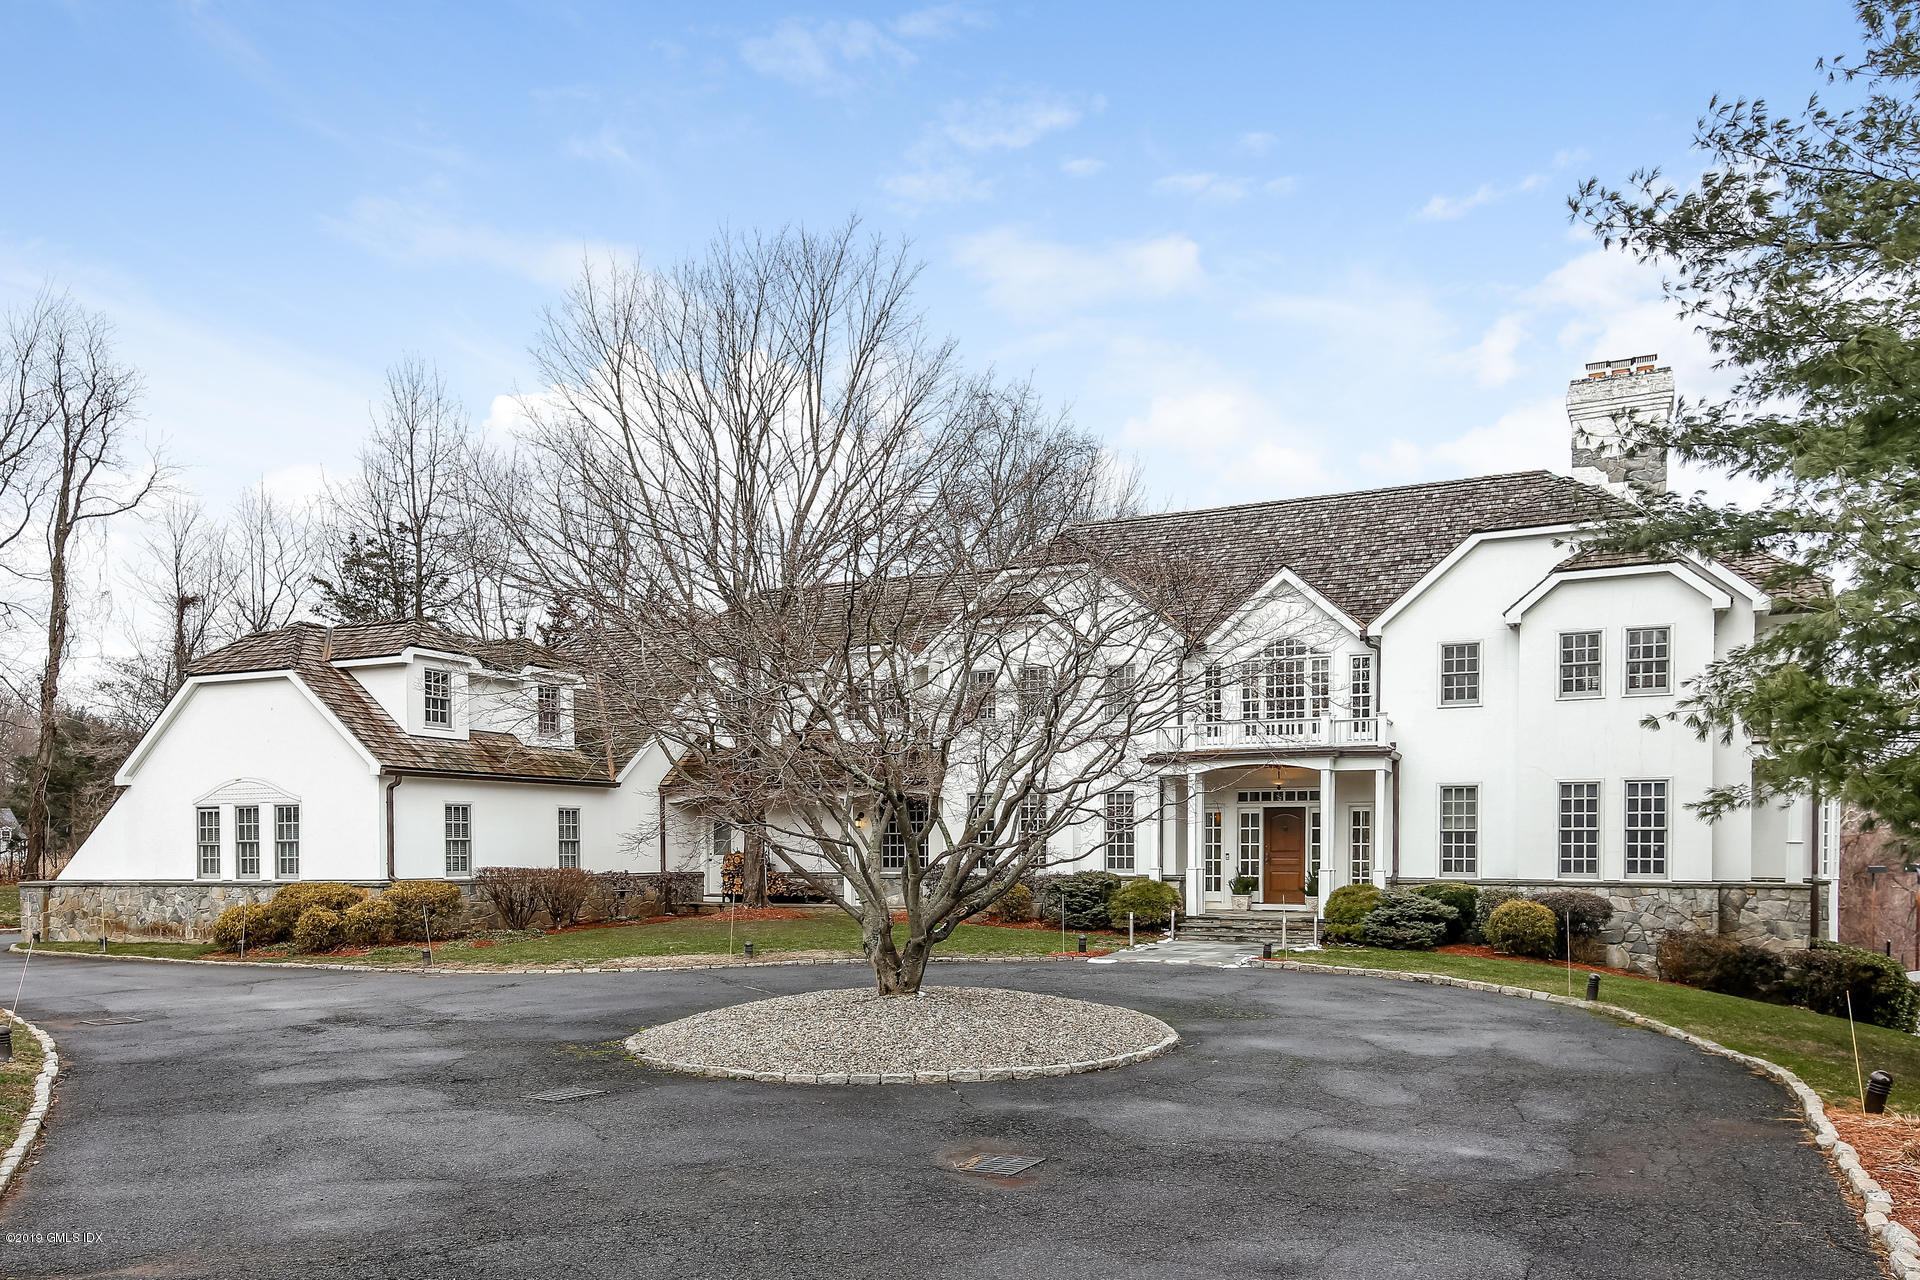 613 Round Hill Road,Greenwich,Connecticut 06831,6 Bedrooms Bedrooms,6 BathroomsBathrooms,Single family,Round Hill,105316